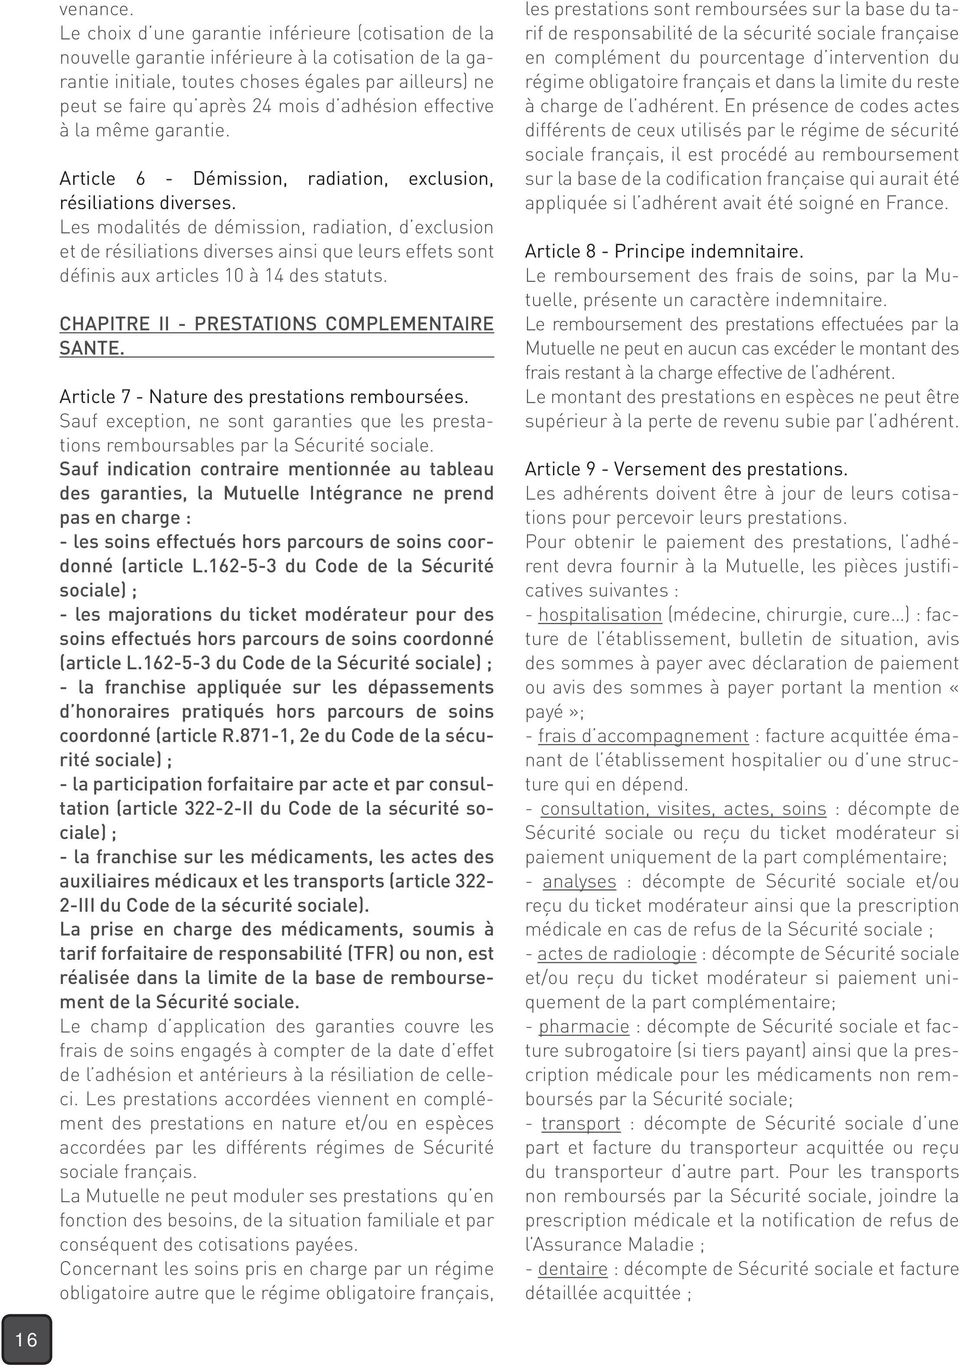 adhésion effective à la même garantie. Article 6 - Démission, radiation, exclusion, résiliations diverses.